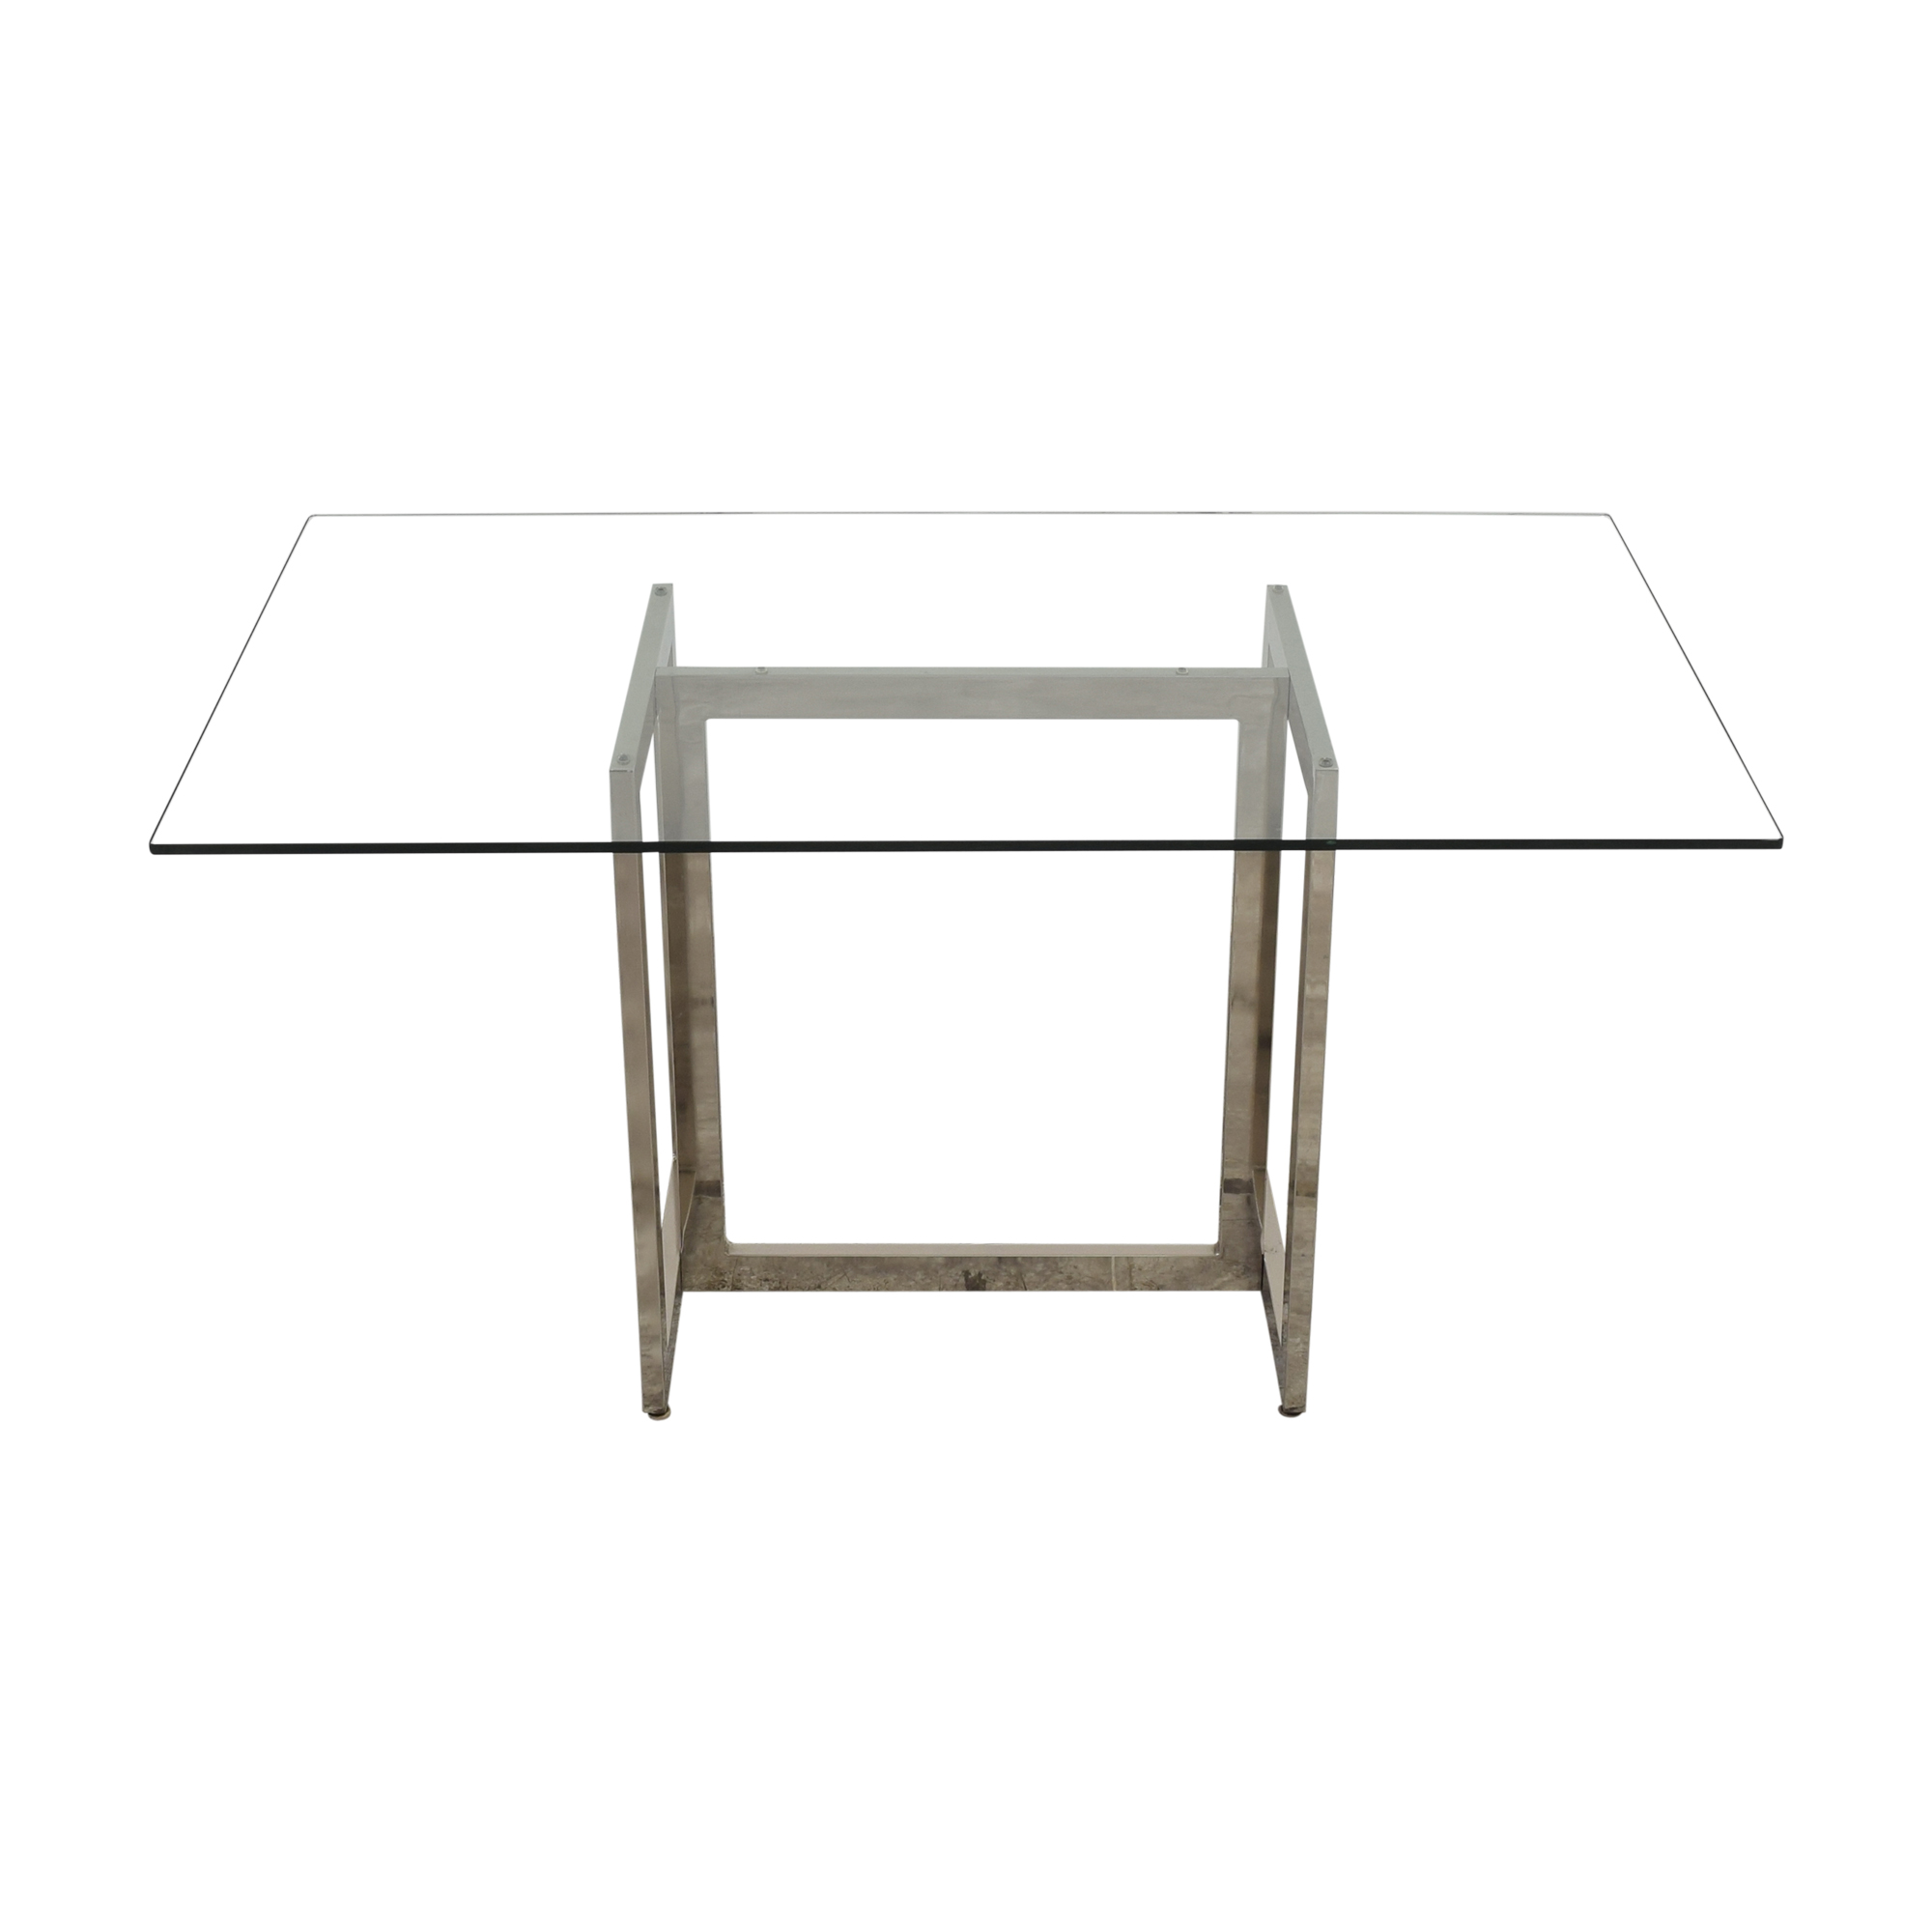 West Elm West Elm Rectangular Glass and Chrome Dining Table silver